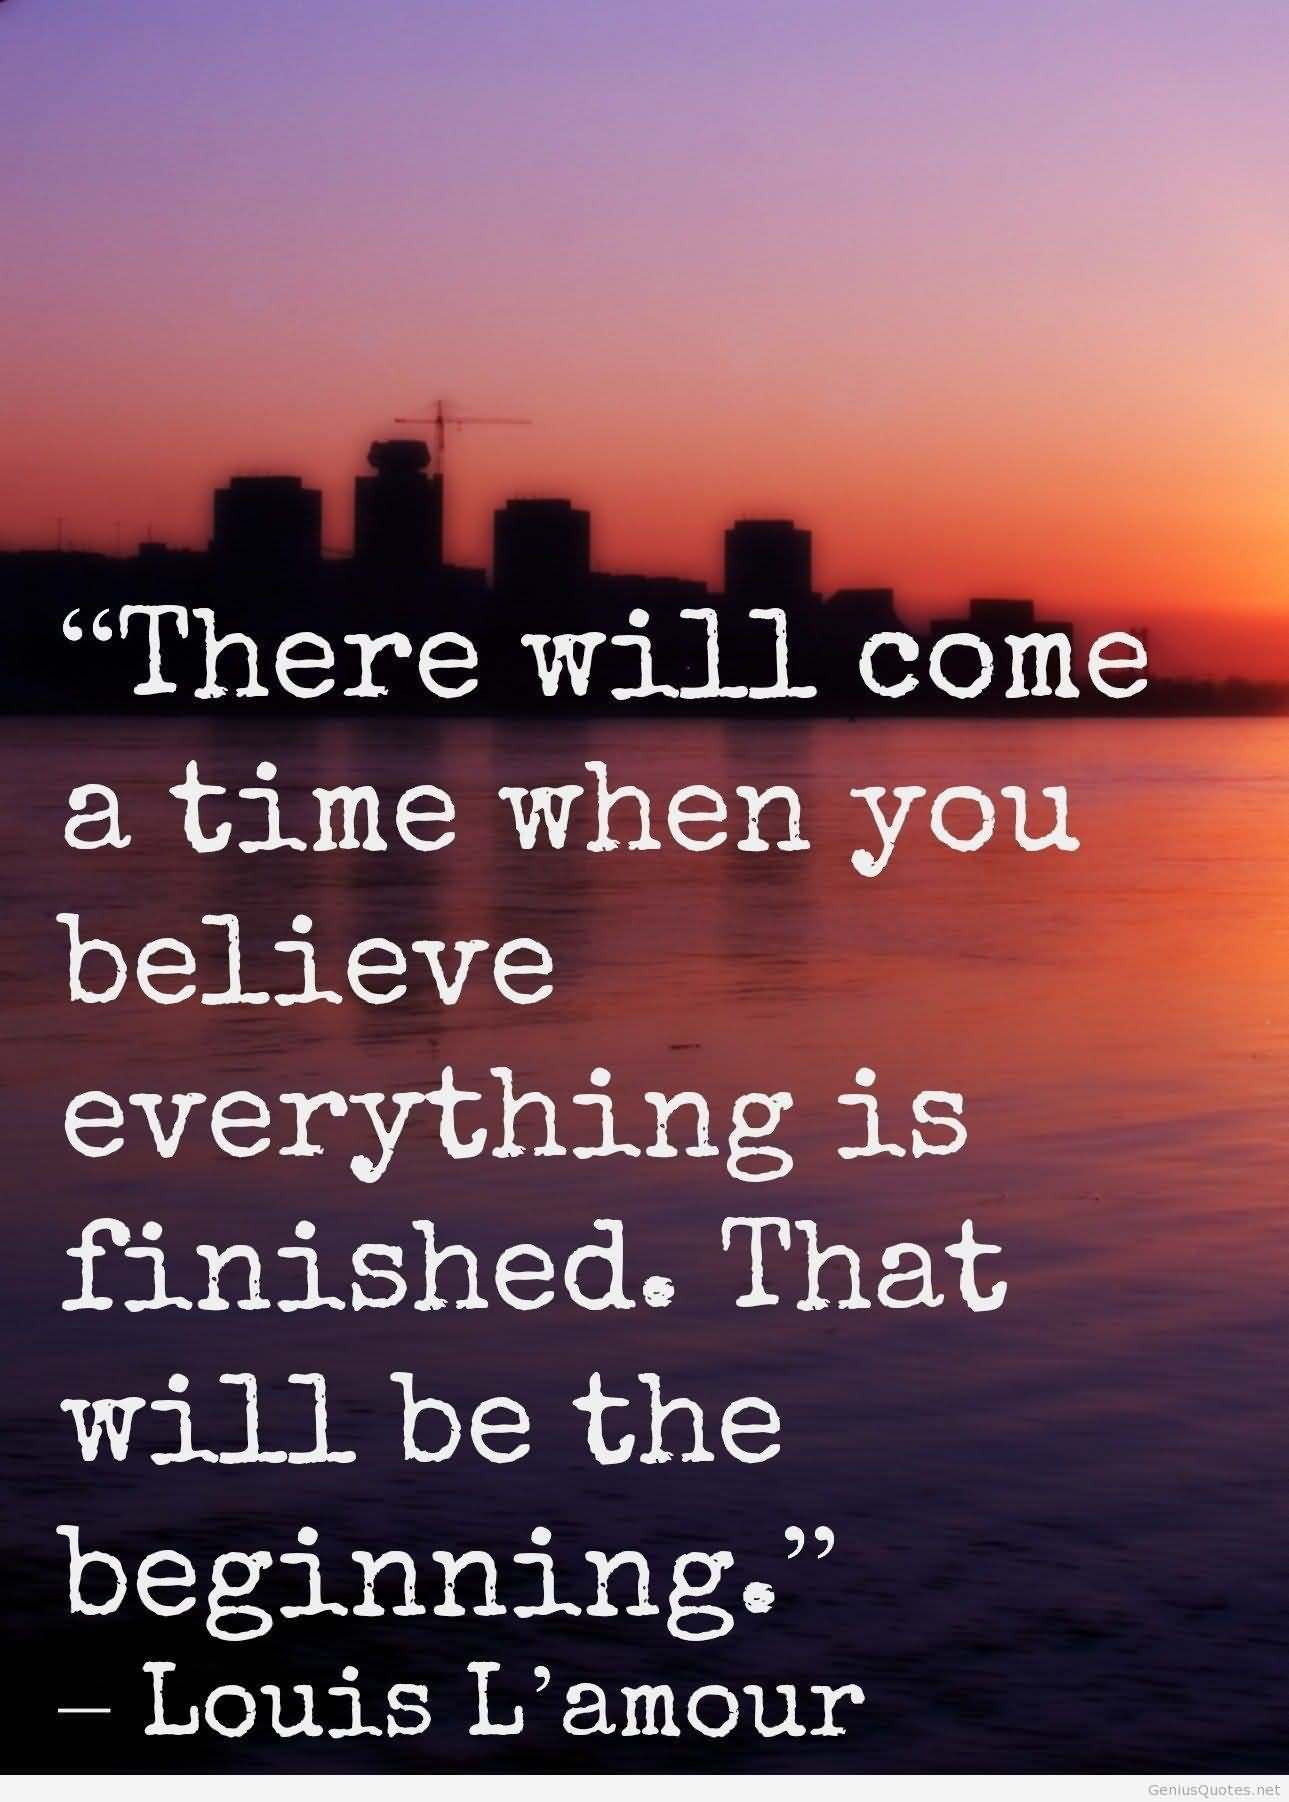 There will come a time when you believe everything is finished; that will be the beginning. Louis L'Amour